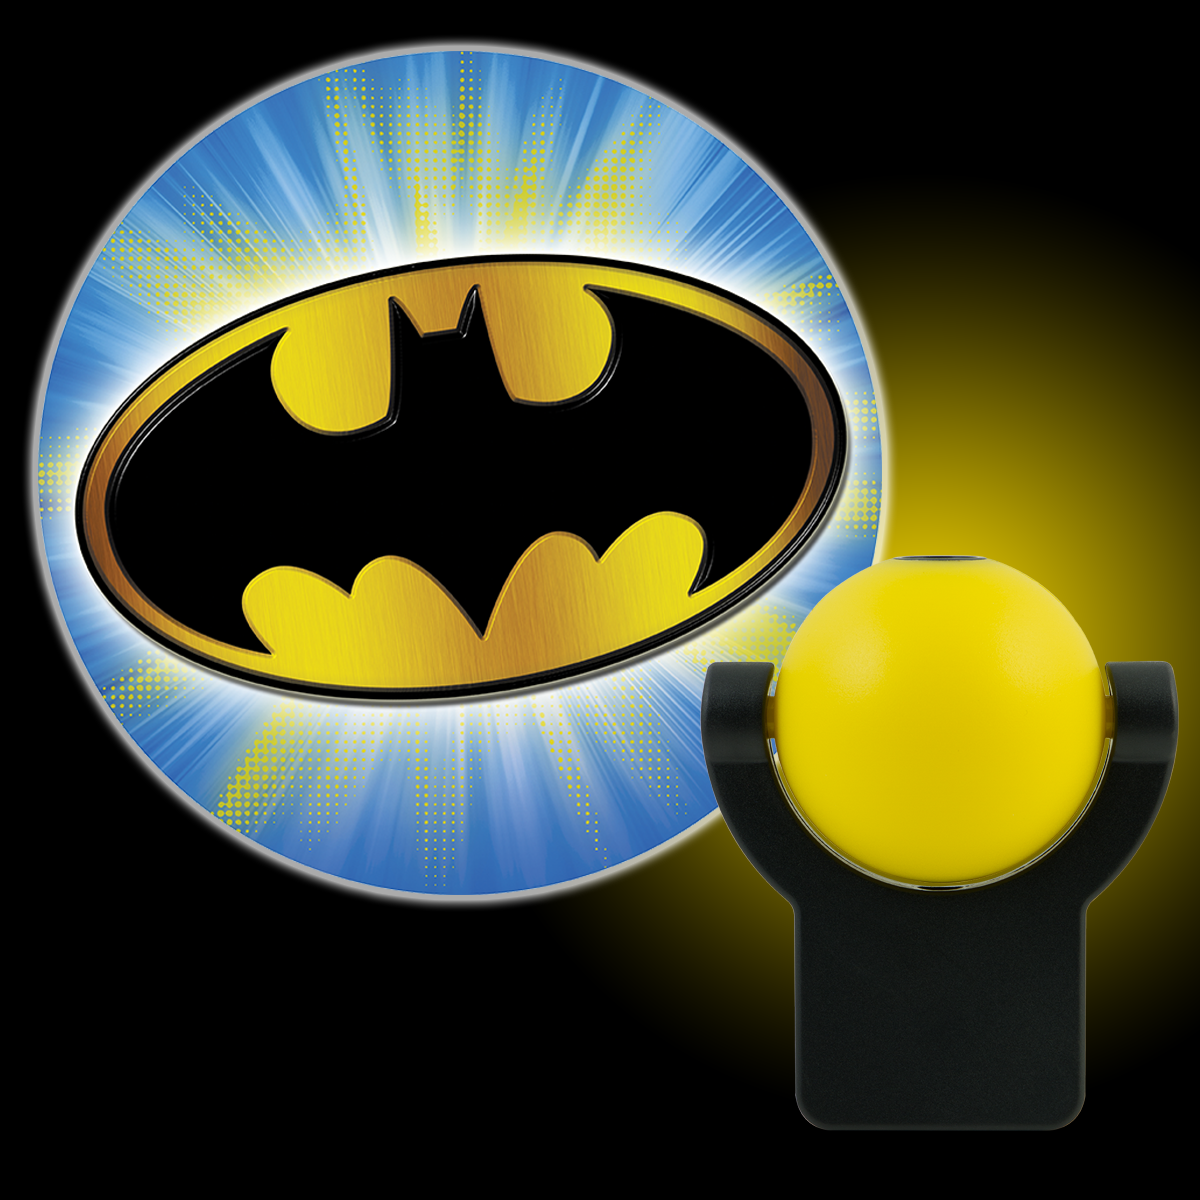 Projectables DC Comics Batman LED Plug-In Night Light, Bat Signal, 14536